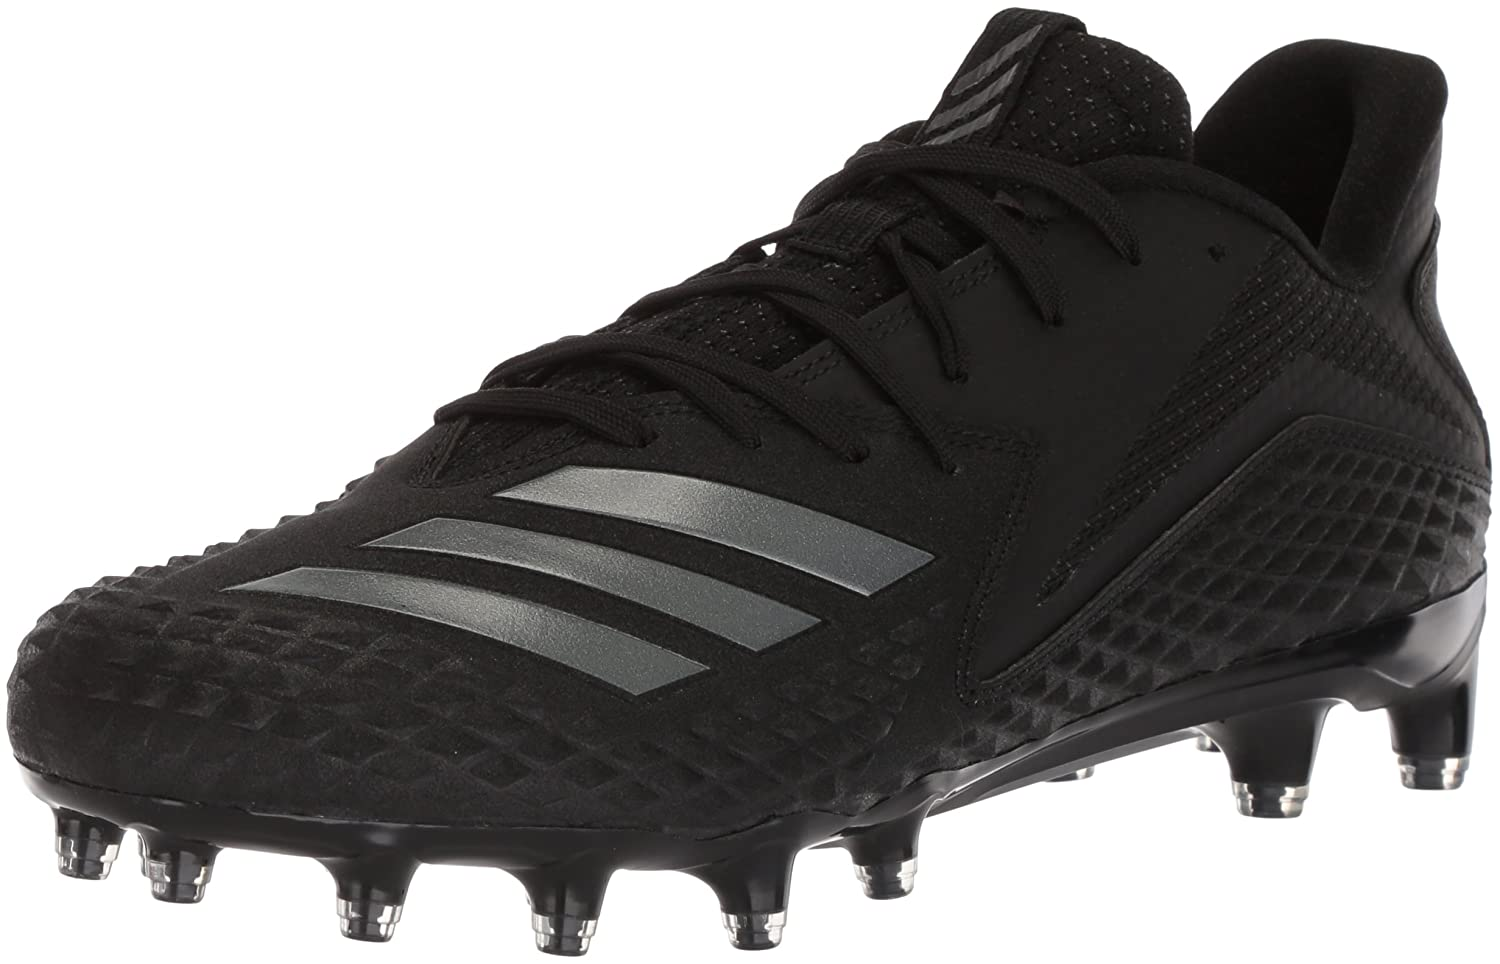 adidas Men's Freak X Carbon Mid Football Shoe B0728B7FXJ 11 D(M) US|Black/Night Metallic/Black